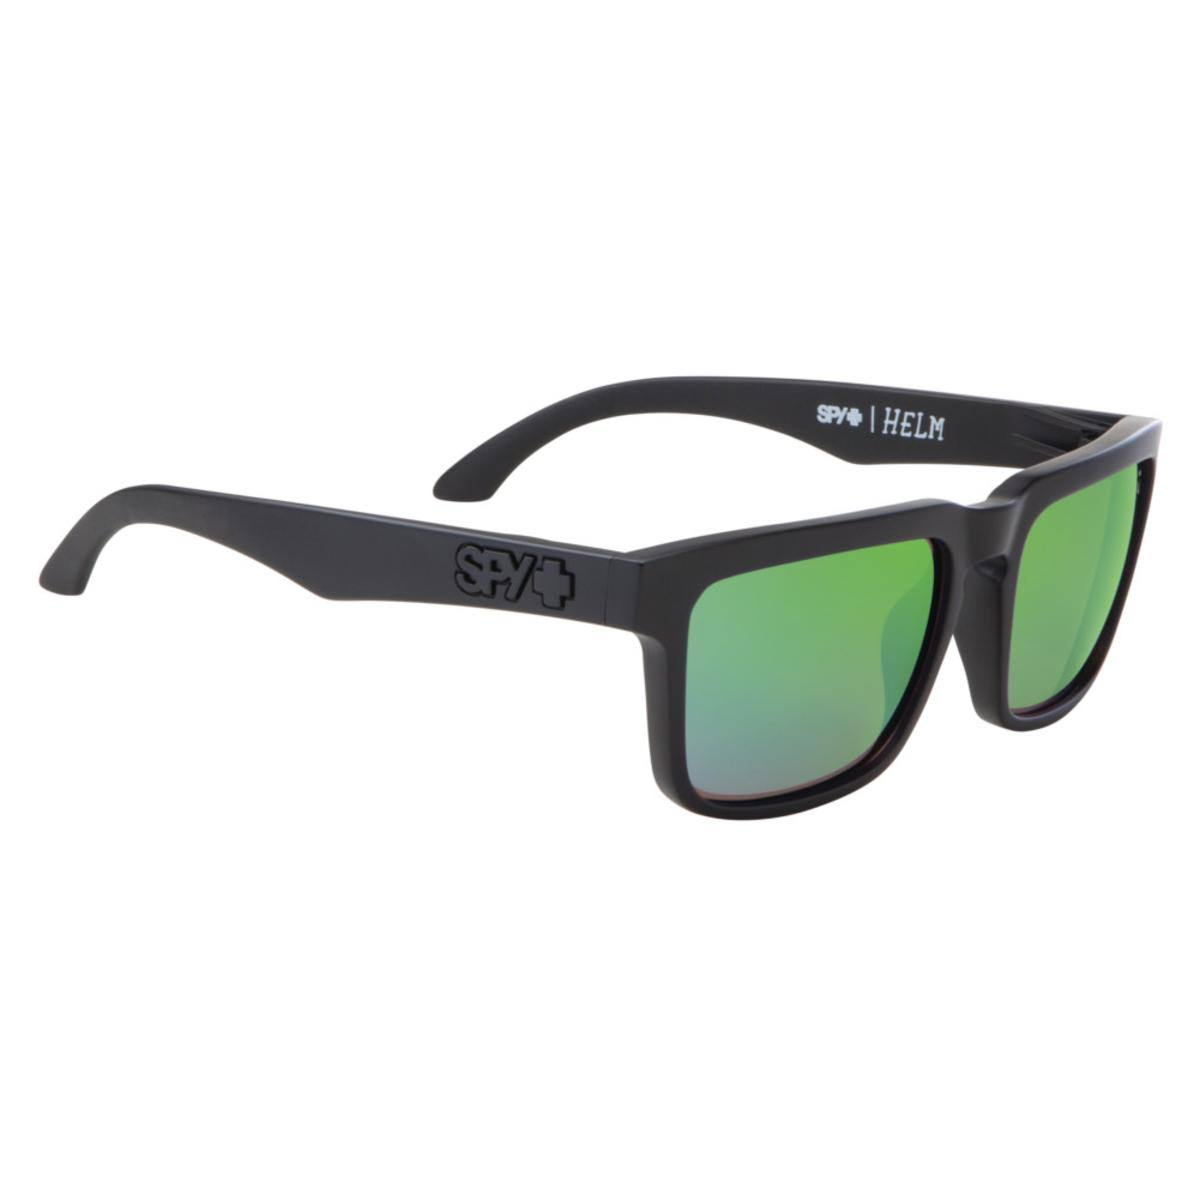 Spy Helm Polarized Sunglasses - Matte Black/Green